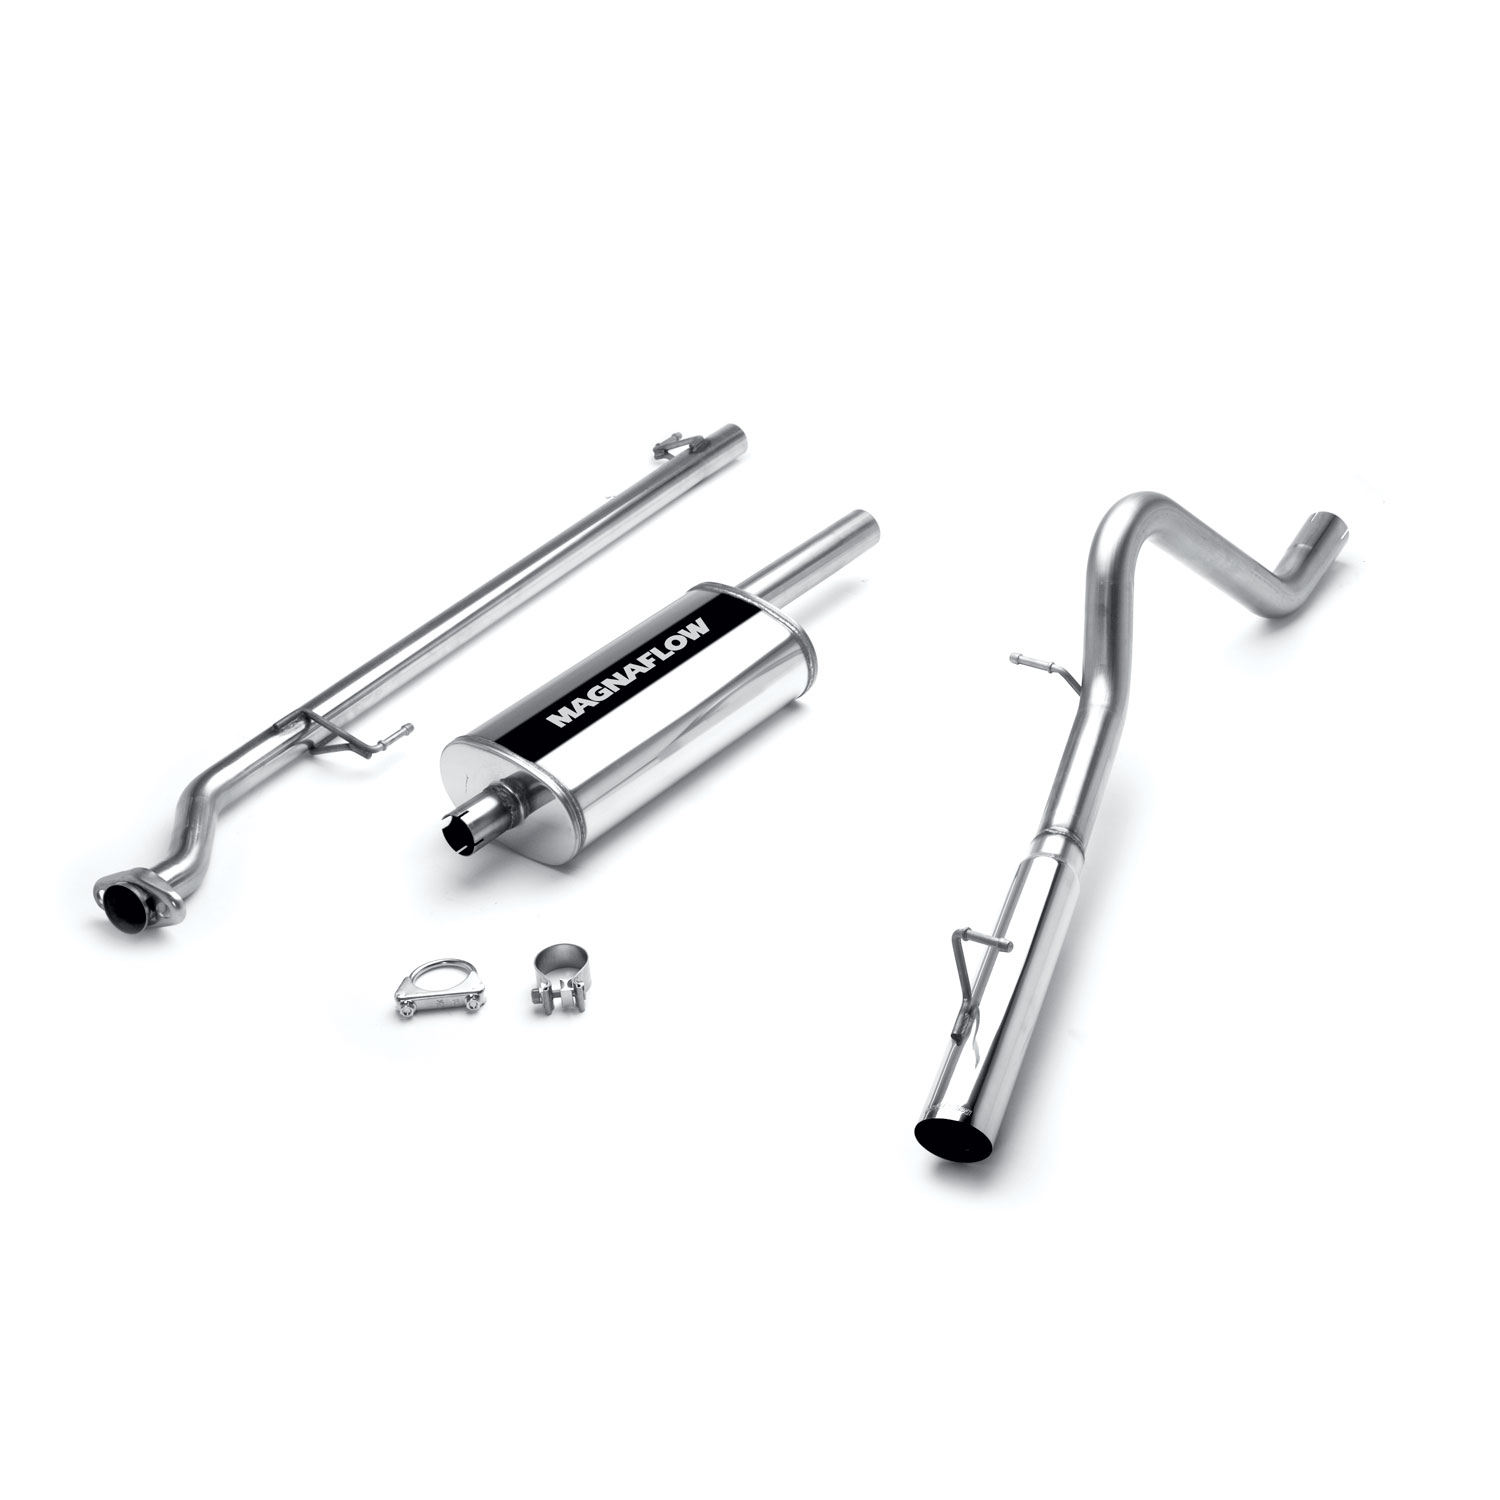 Magnaflow Stainless Steel Cat Back Performance Exhaust System